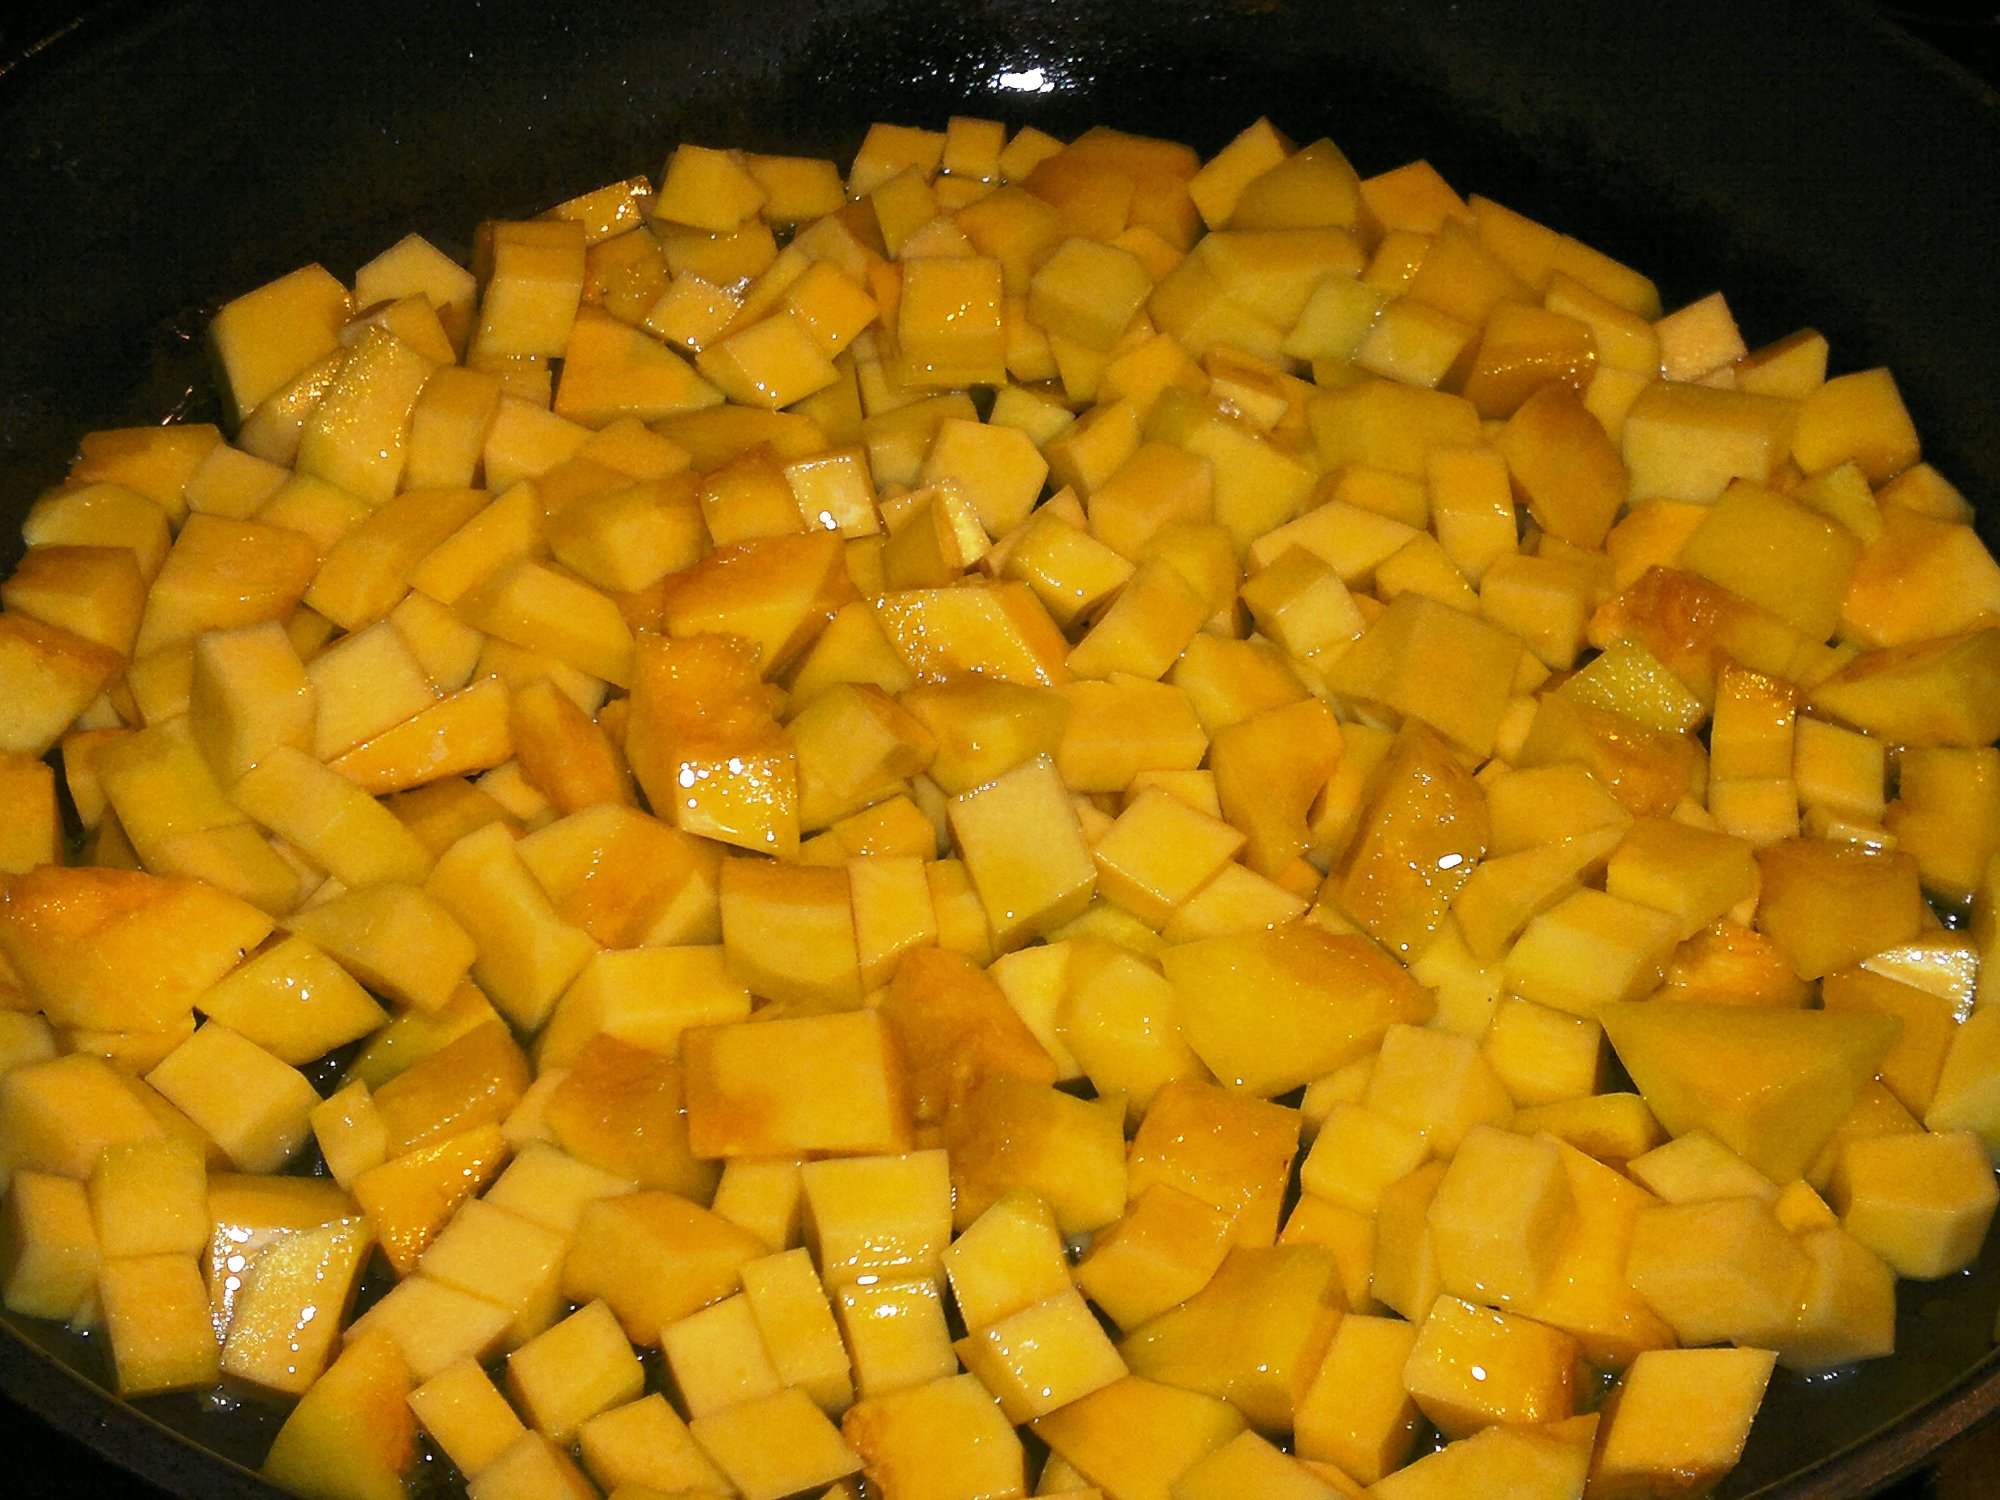 Butternut squash, ready for the oven